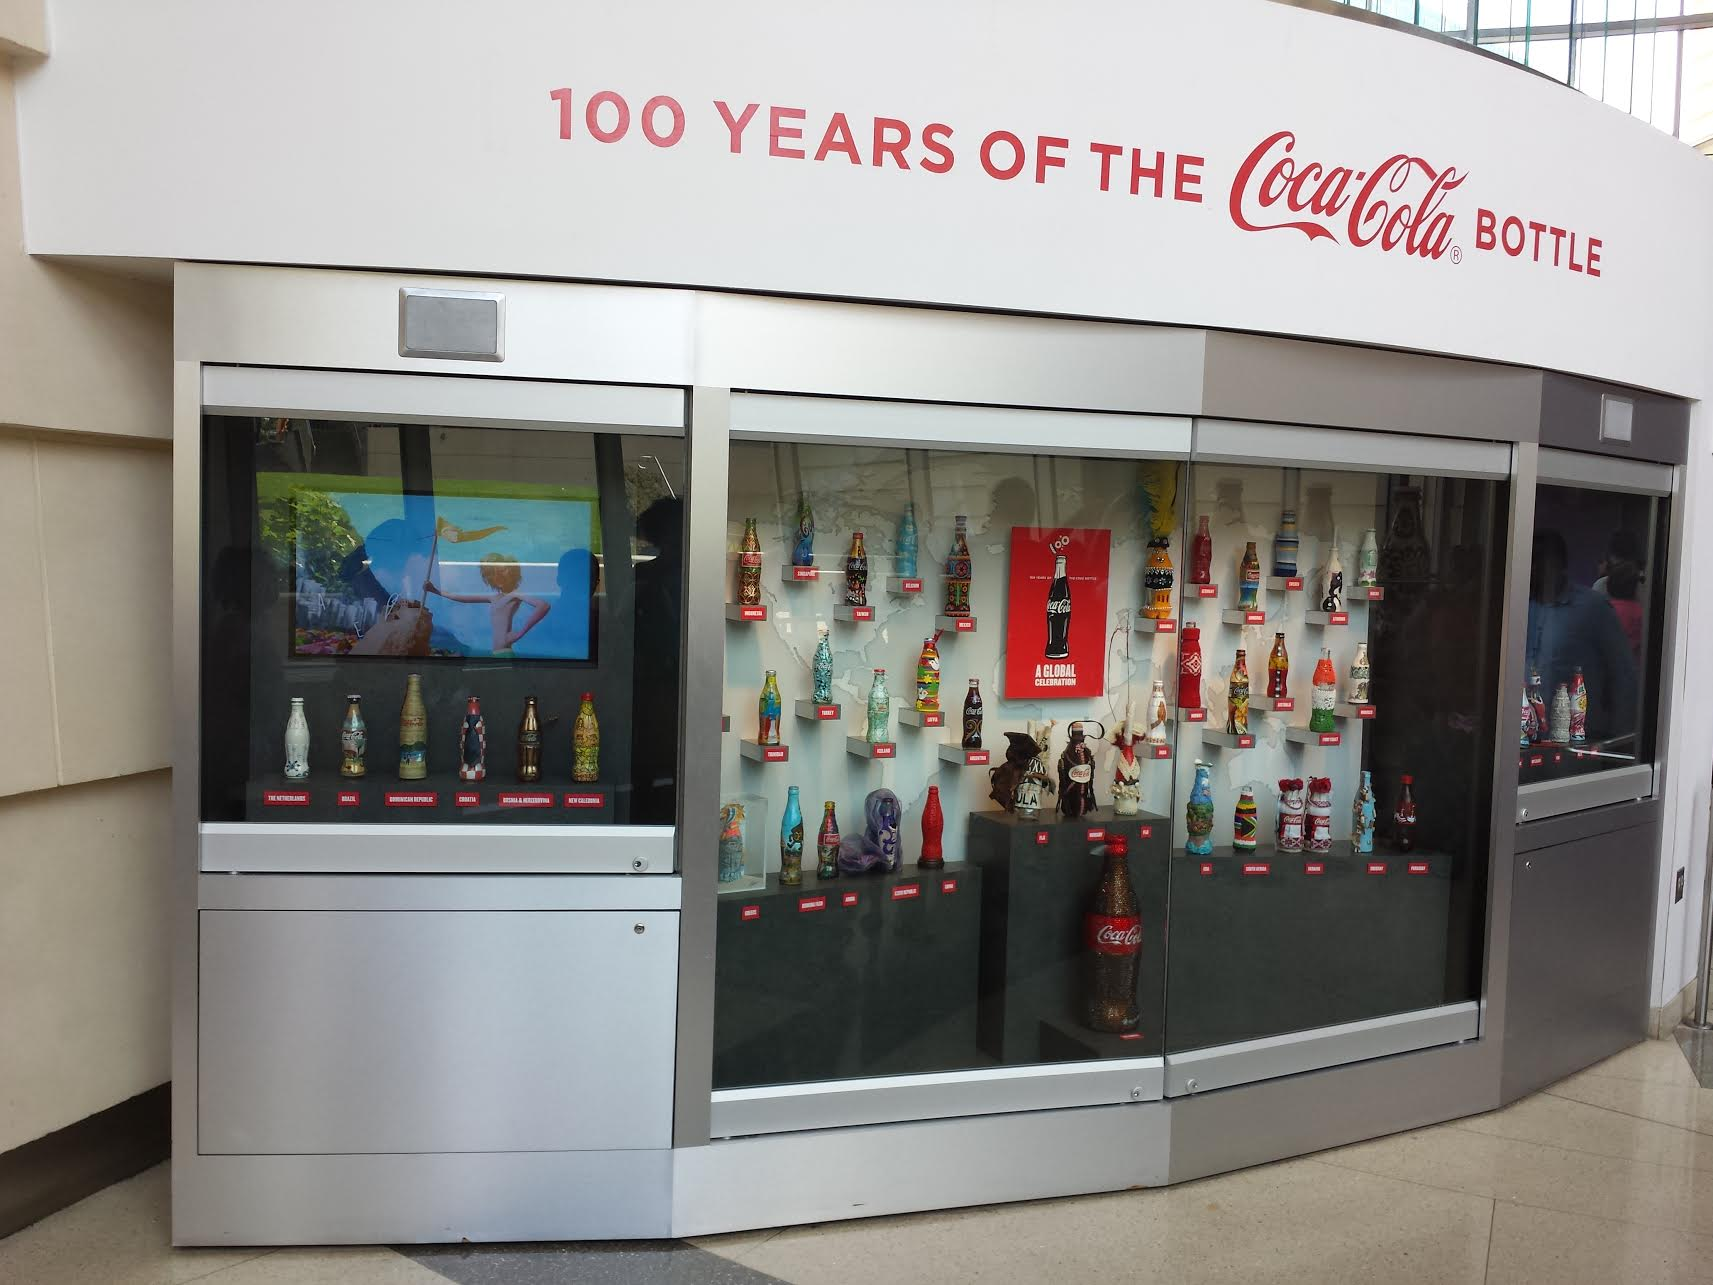 100 Years of Coca Cola Bottle